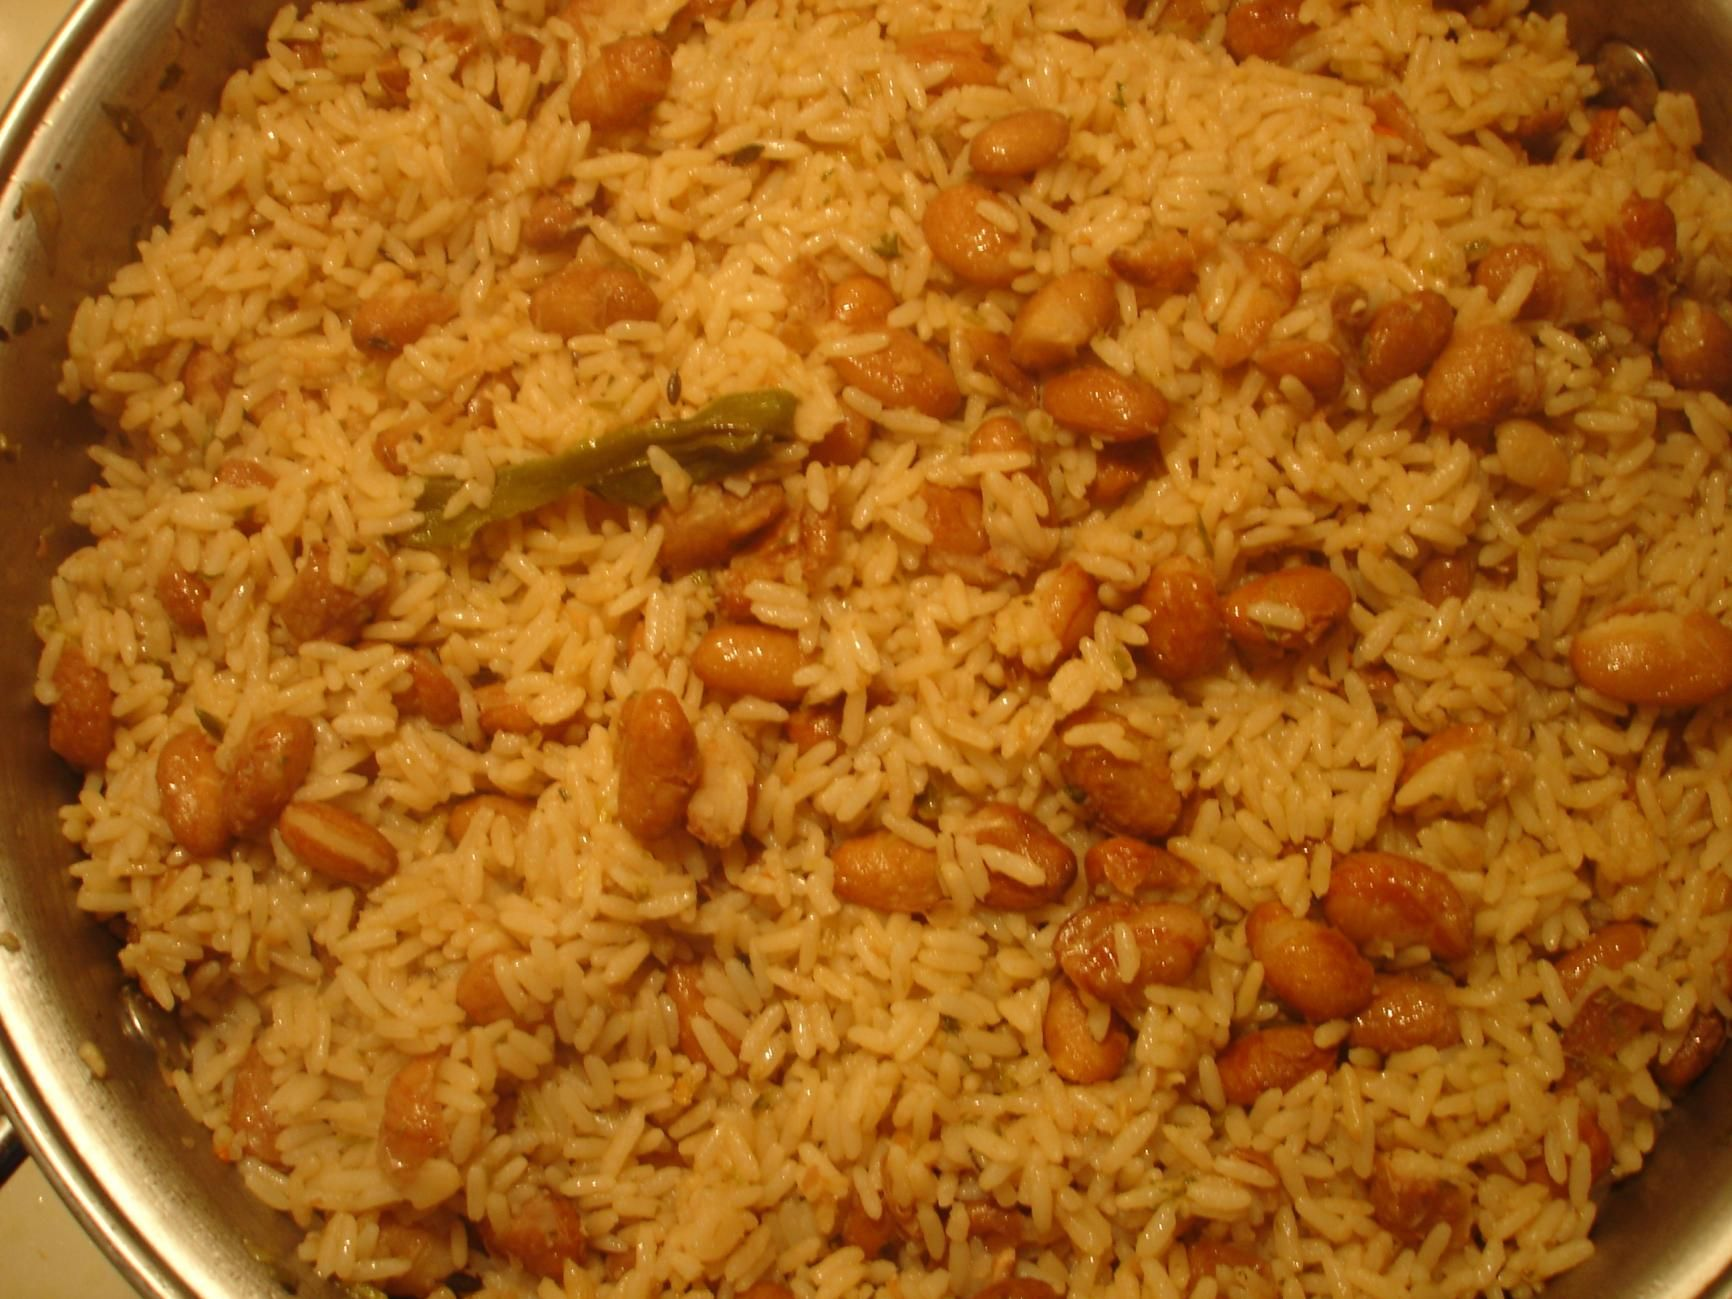 Haitian foods dishes and restaurants page 5 haitian foods dishes and restaurants page 5 forumfinder Choice Image